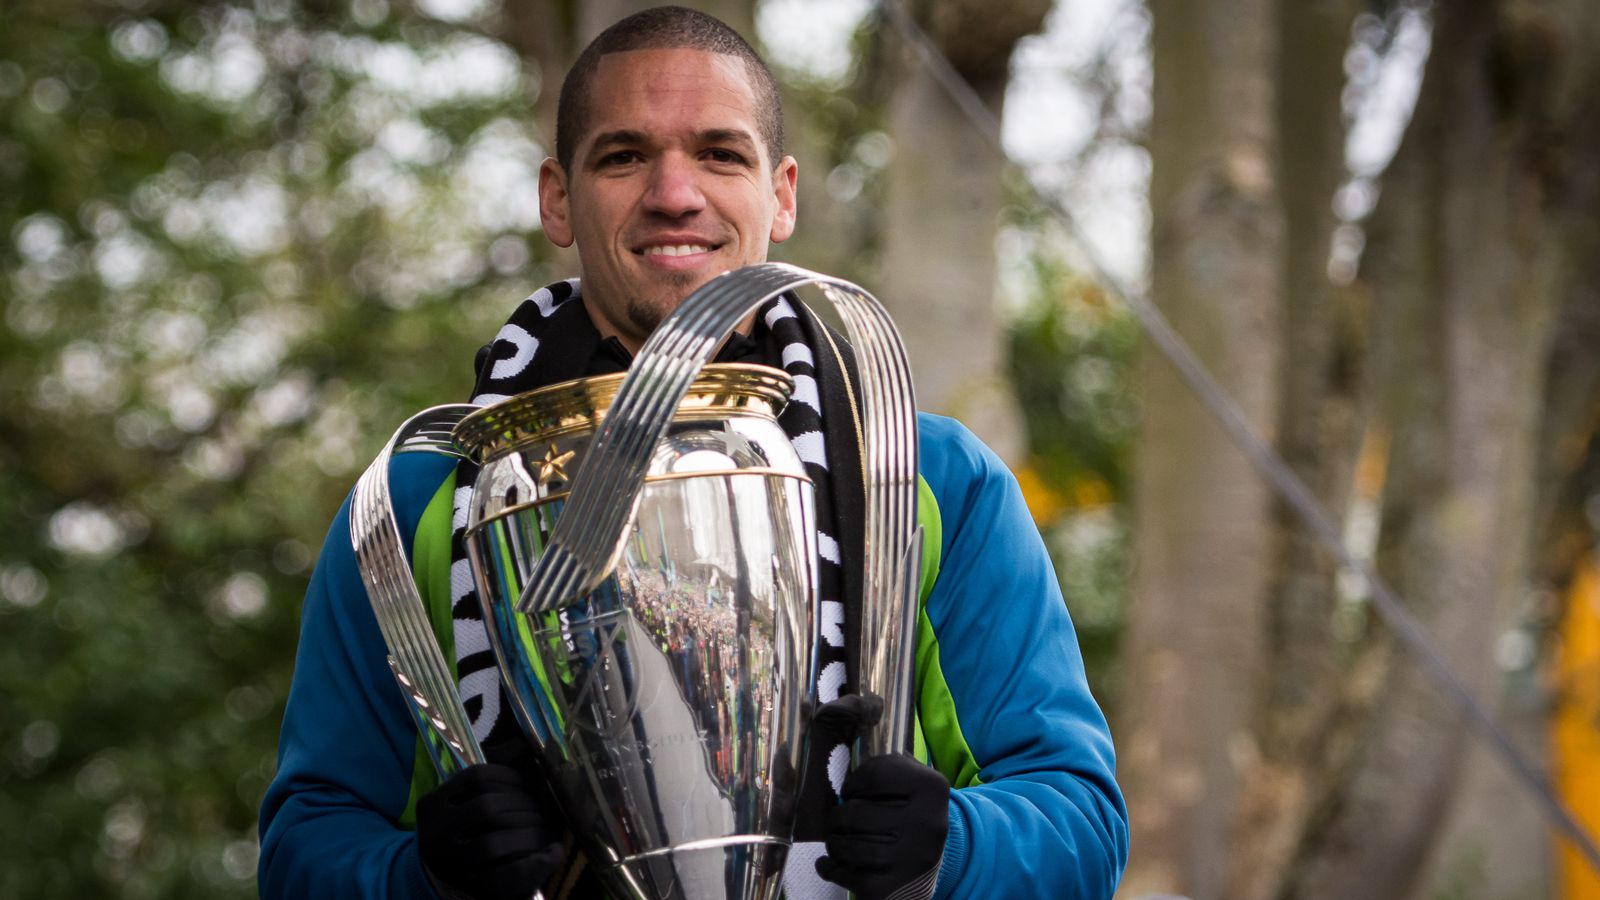 Mlscup_parade_mikerussellfoto_77.0